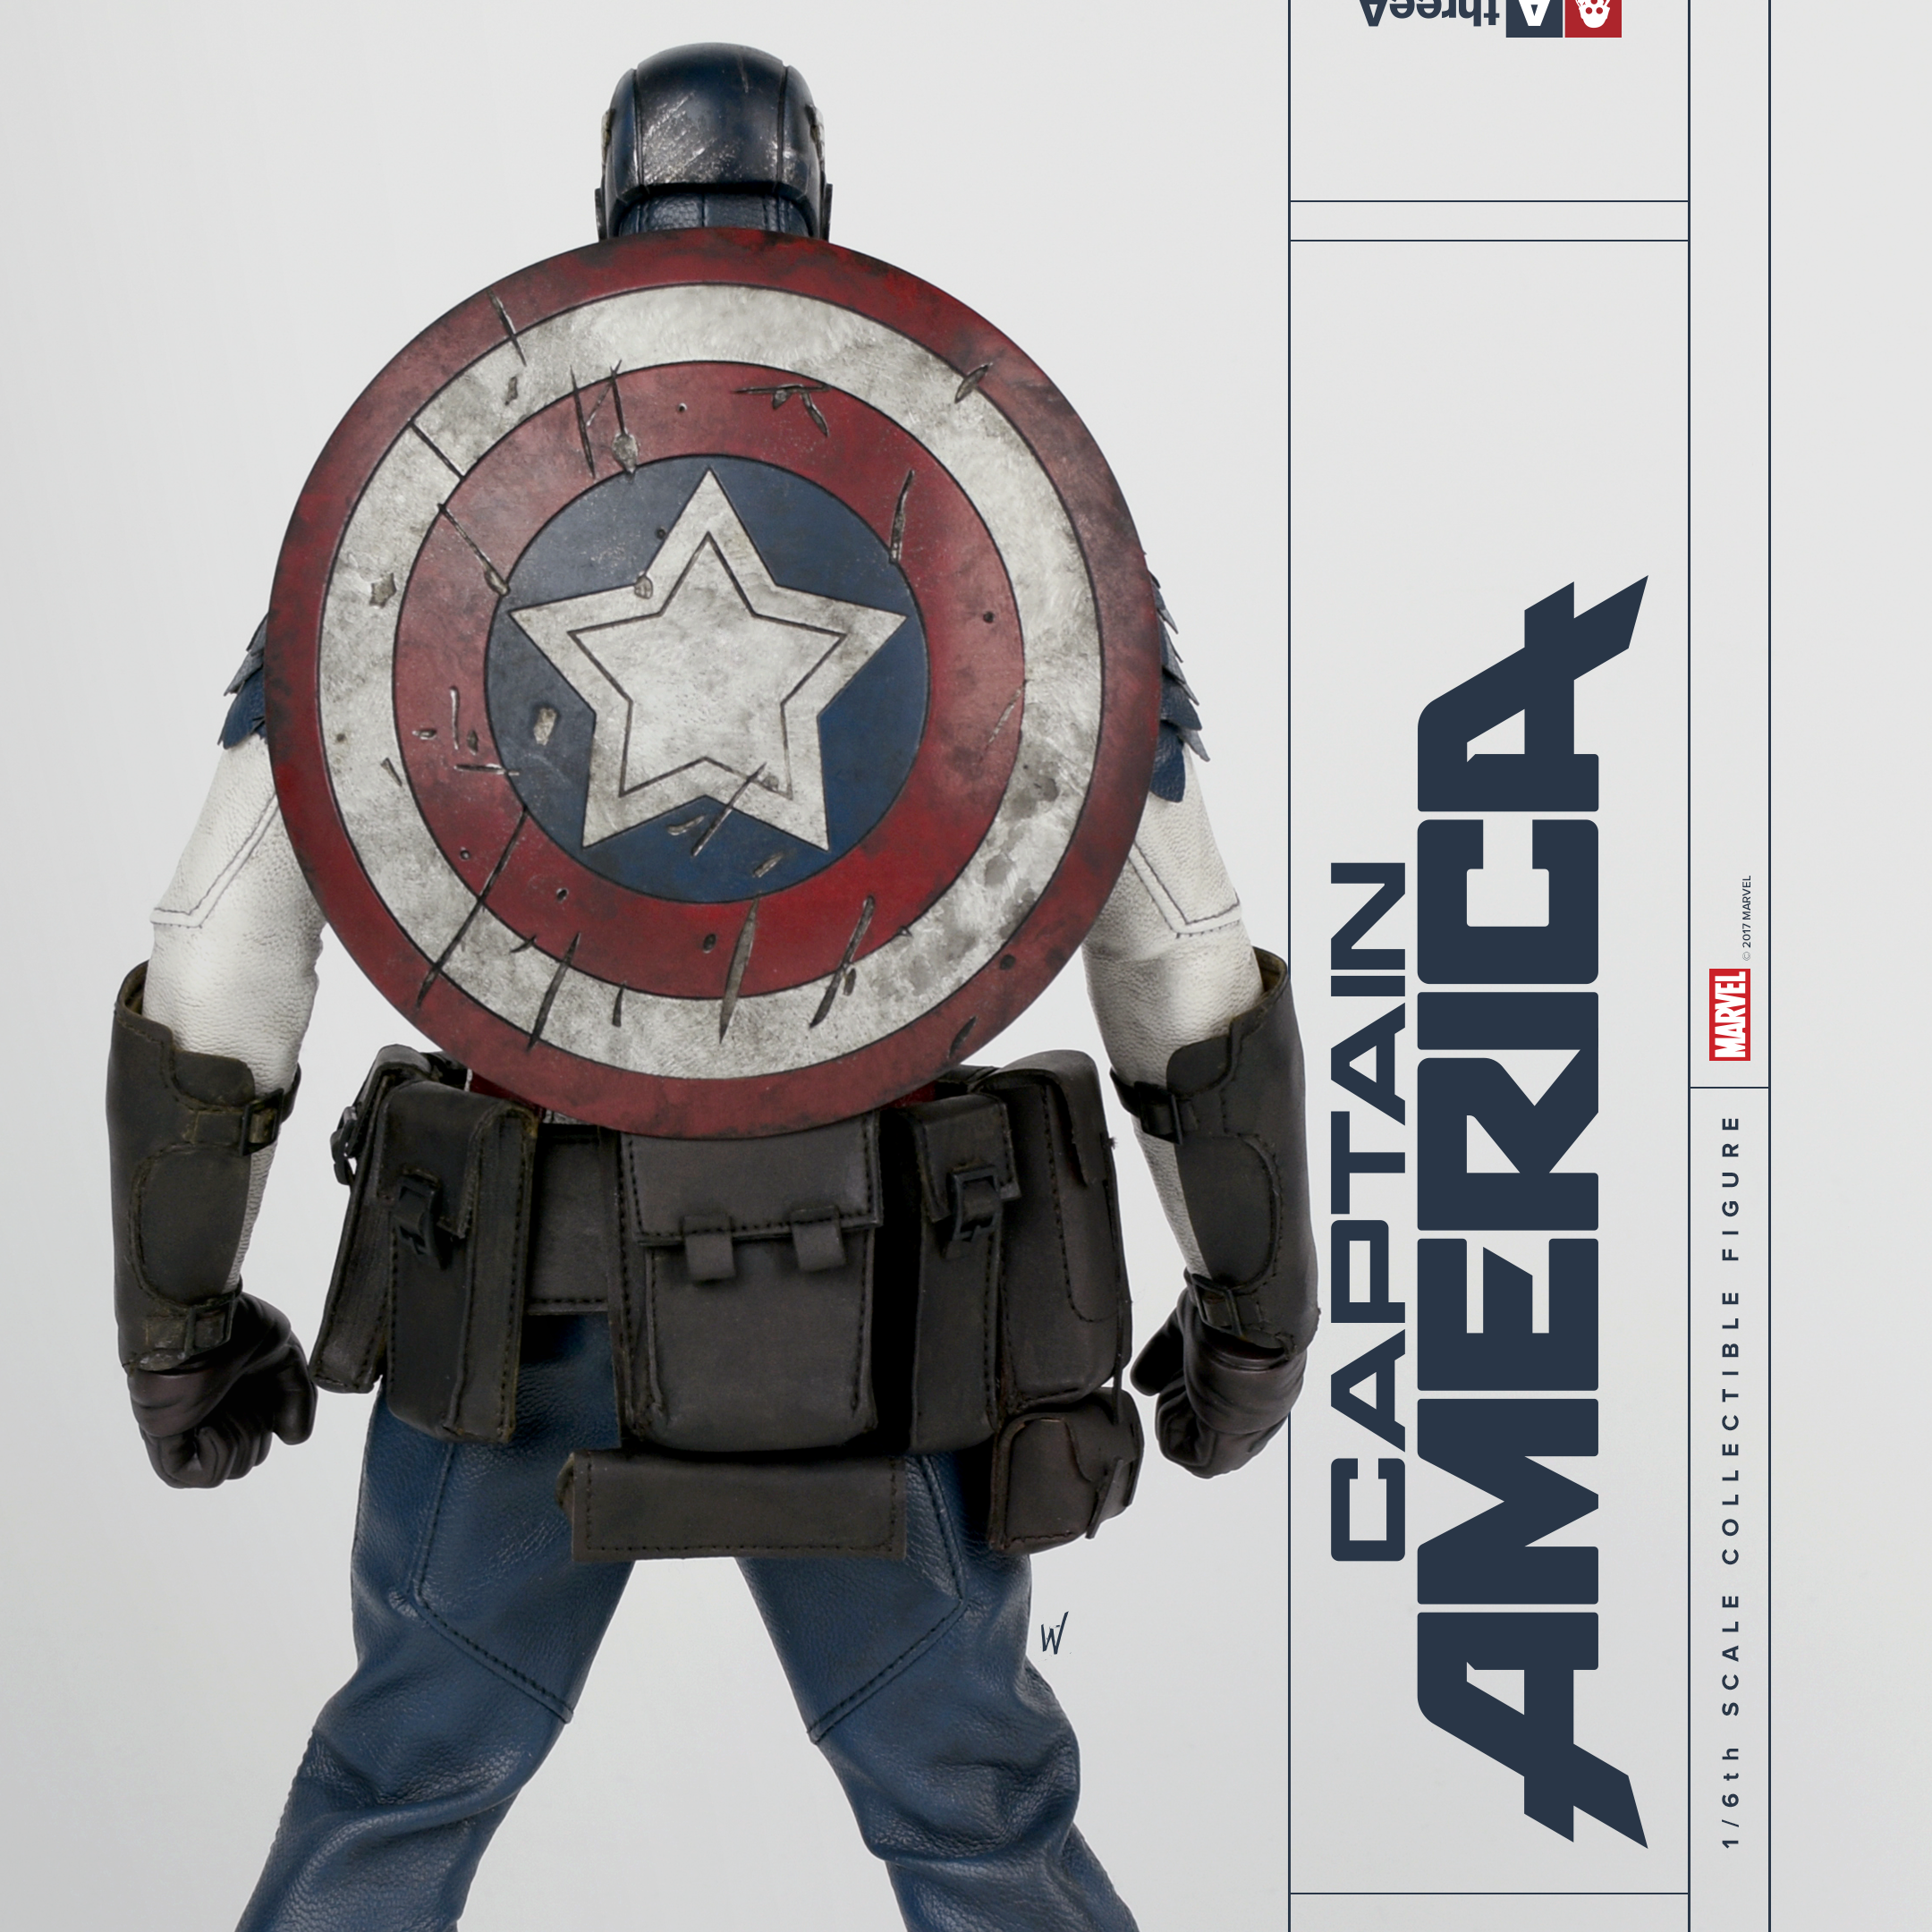 3A_Marvel_CaptainAmerica_Square_Ad_002b.png